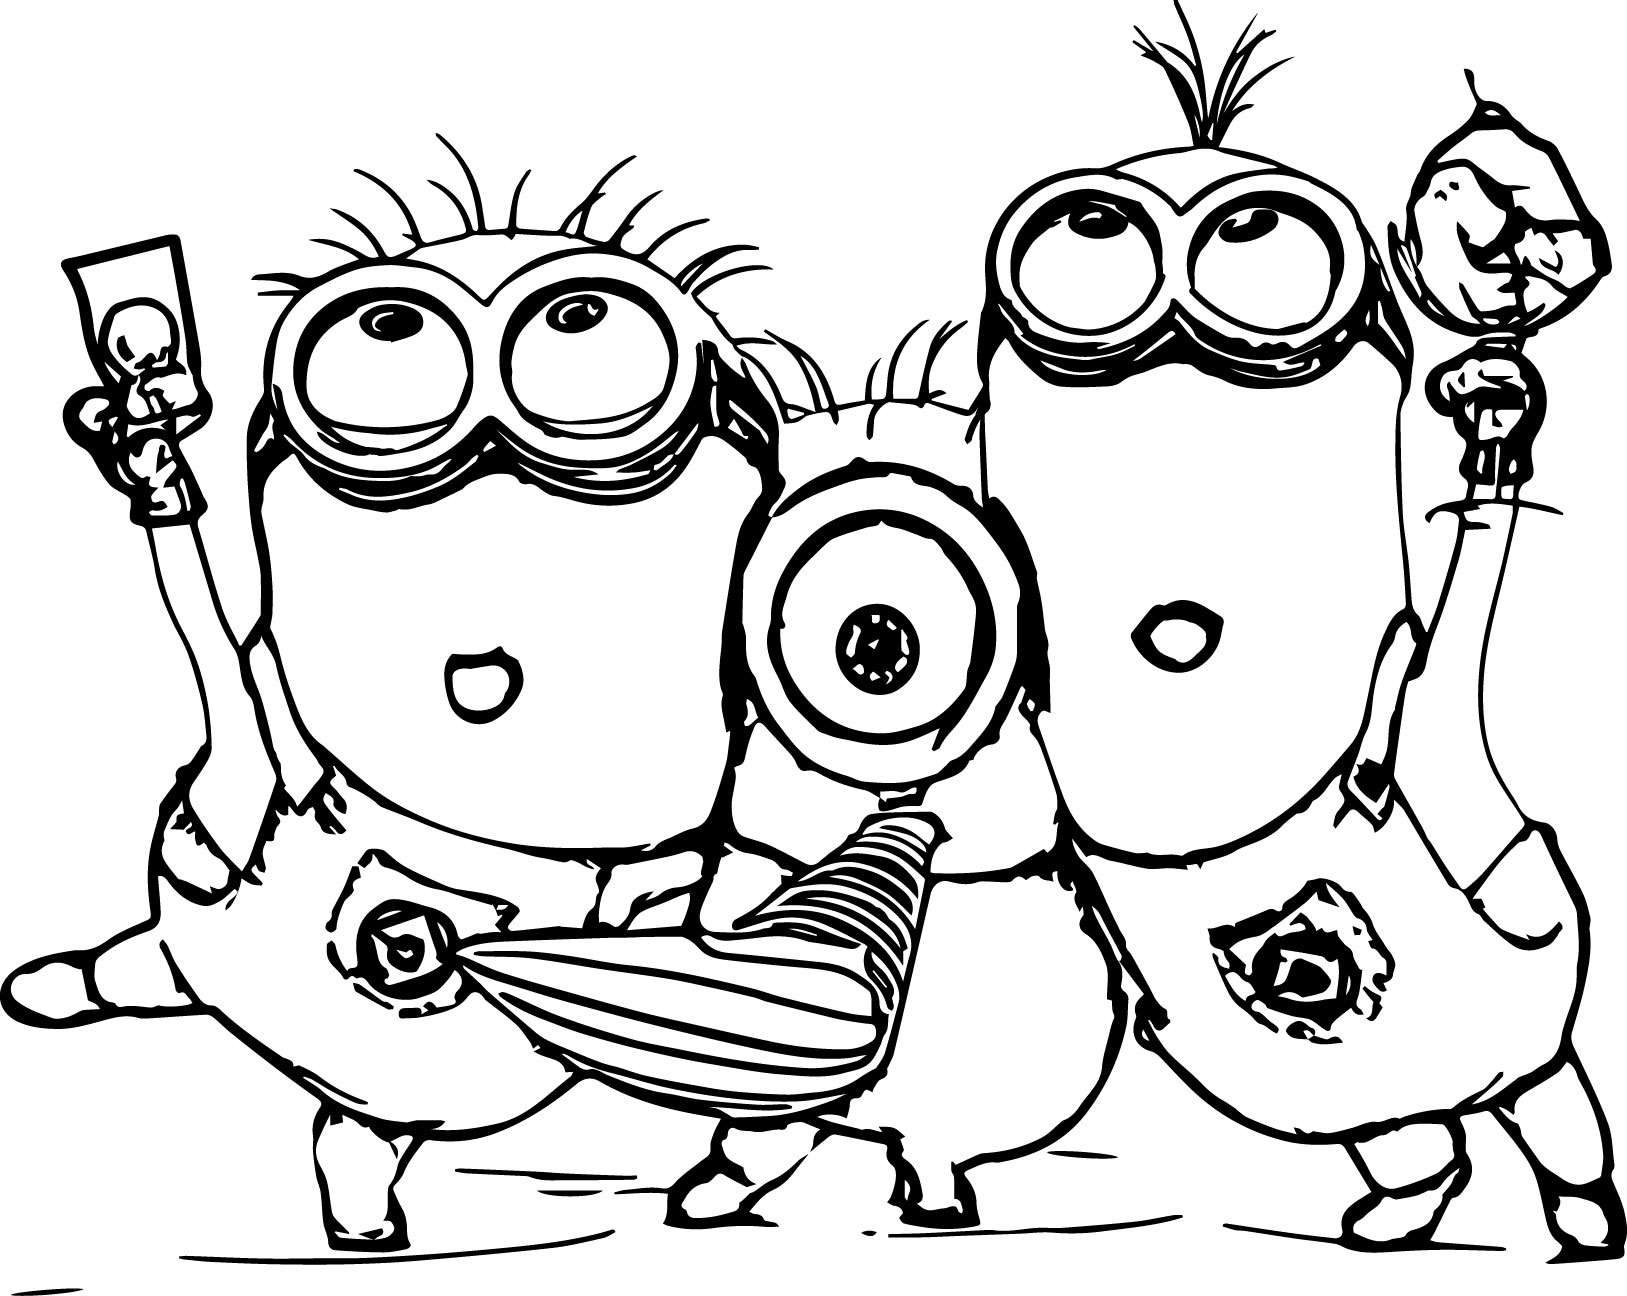 coloring pages printable besides minion printable coloring pages